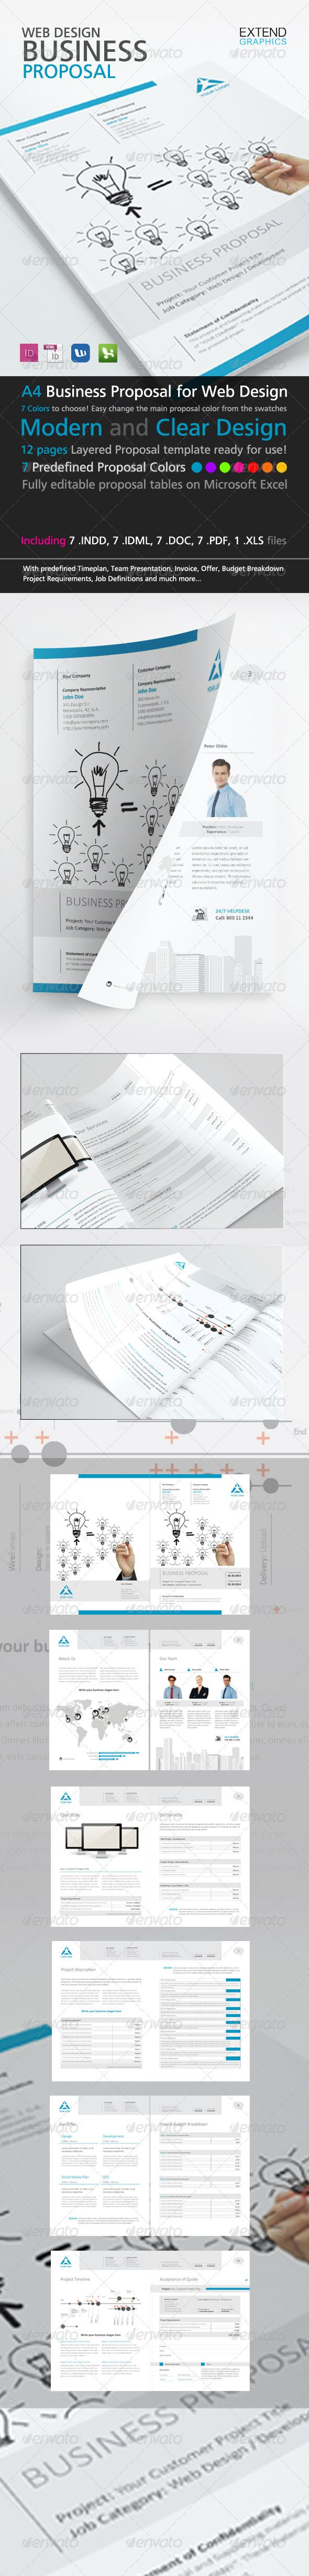 Web Design Business Proposal Template